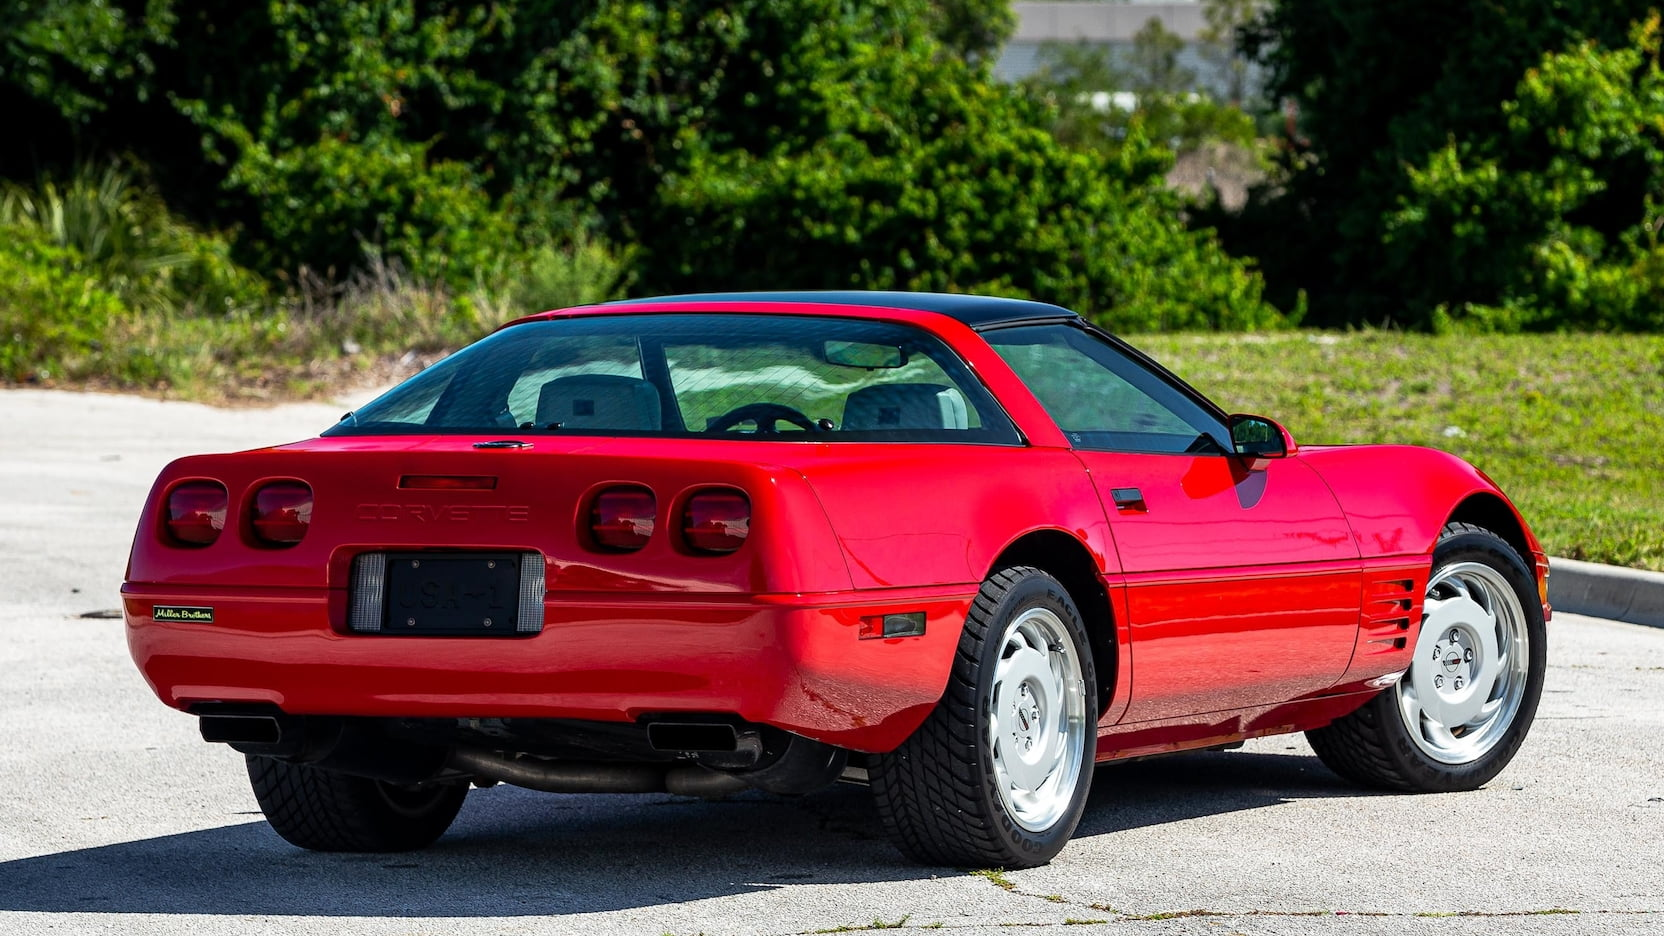 1992 Chevrolet Corvette coupe C4